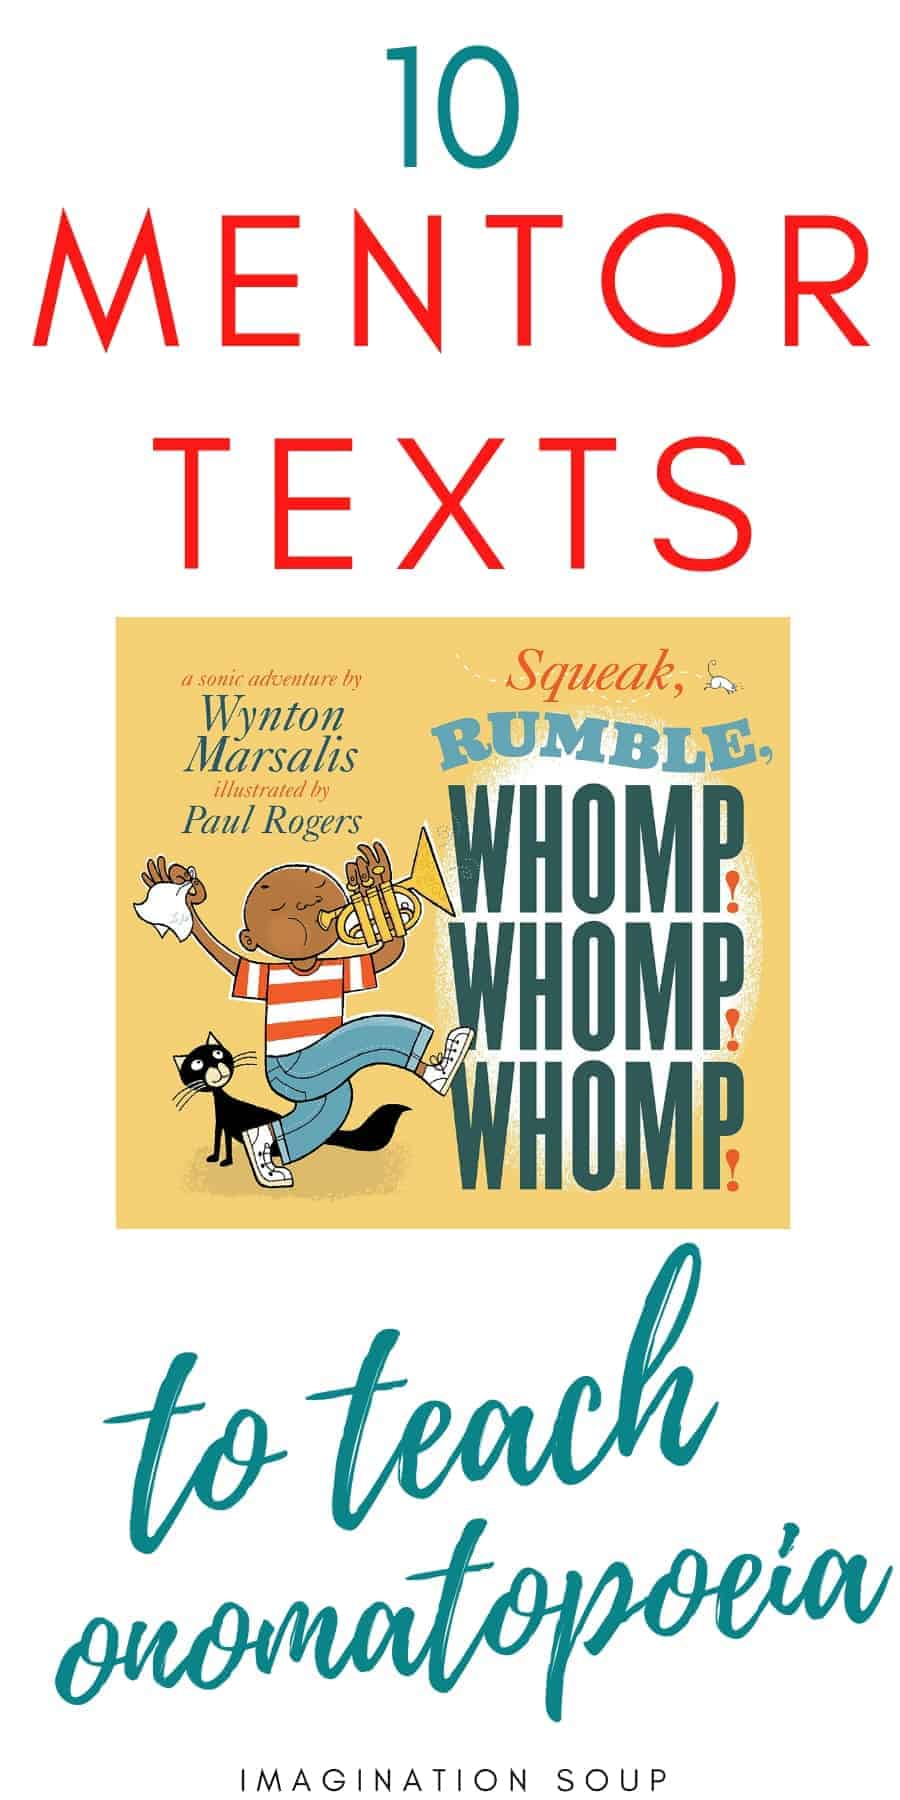 picture book mentor texts to teach onomatopoeia